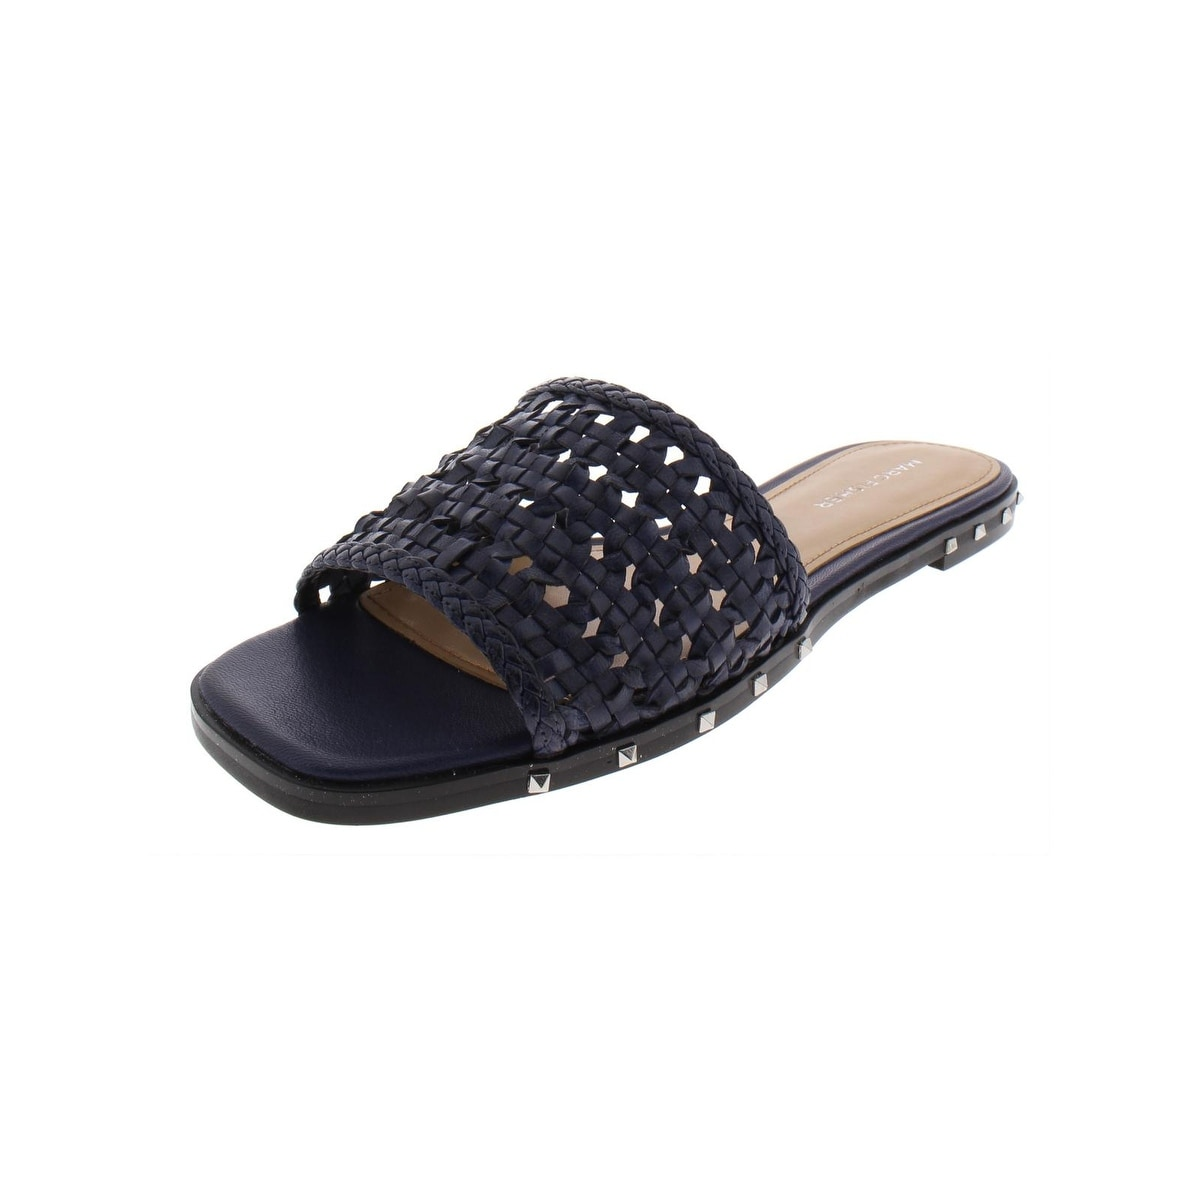 a83d911b10a Buy MARC FISHER Women's Sandals Online at Overstock | Our Best ...